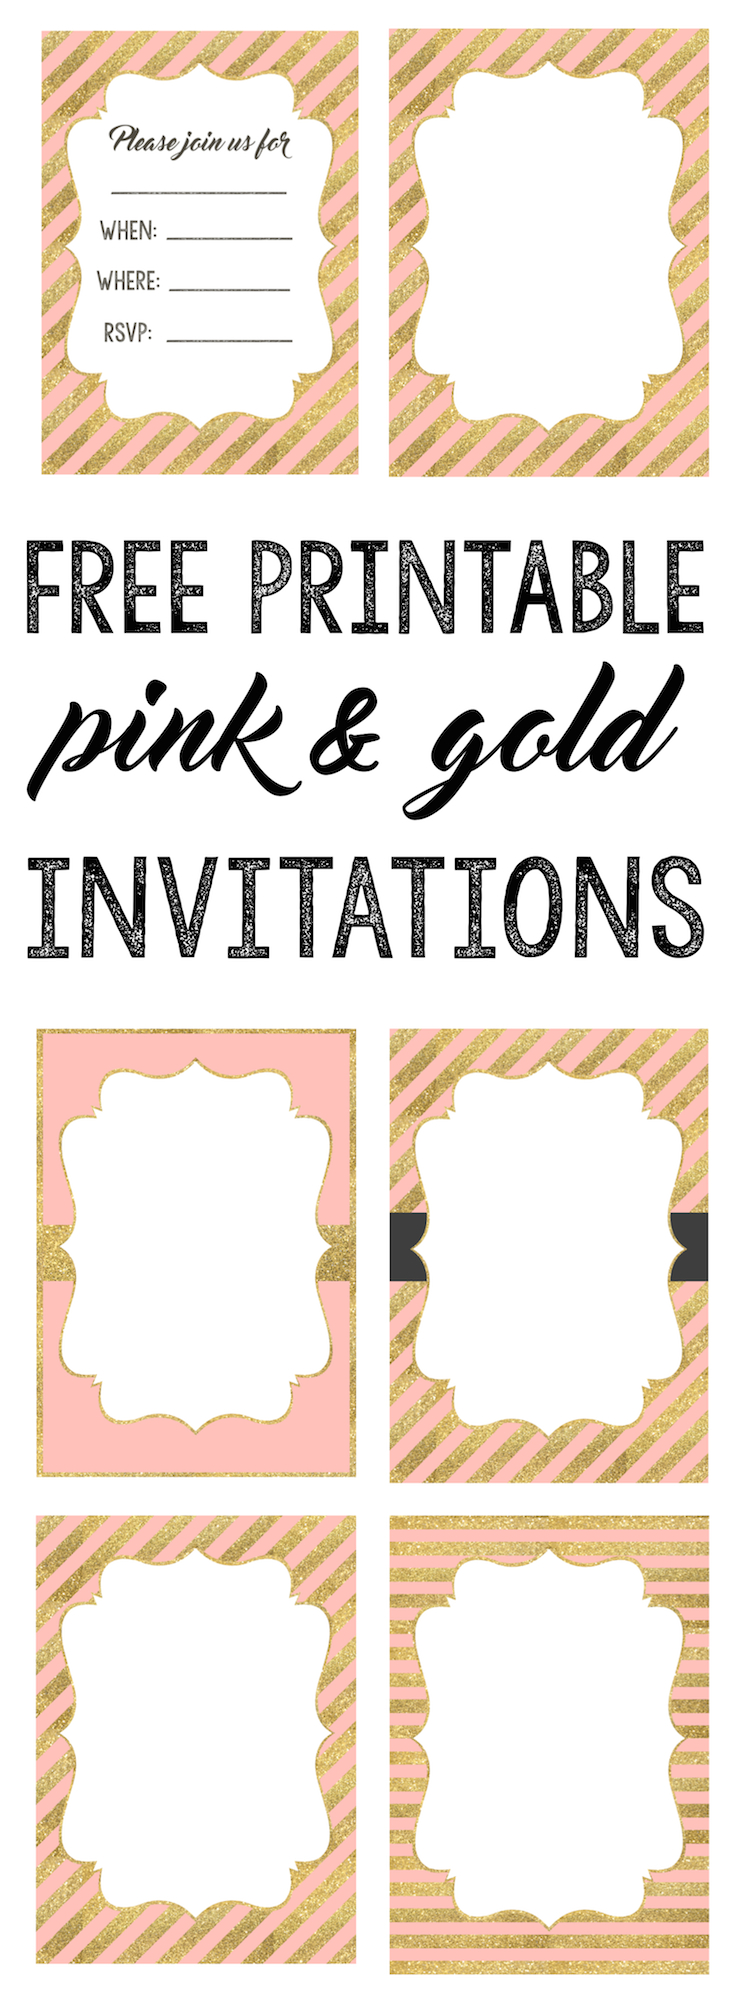 Pink and Gold invitations free printable. Select a pink and gold invitation and personalize it for your baby shower, birthday party, bridal shower, or other event.